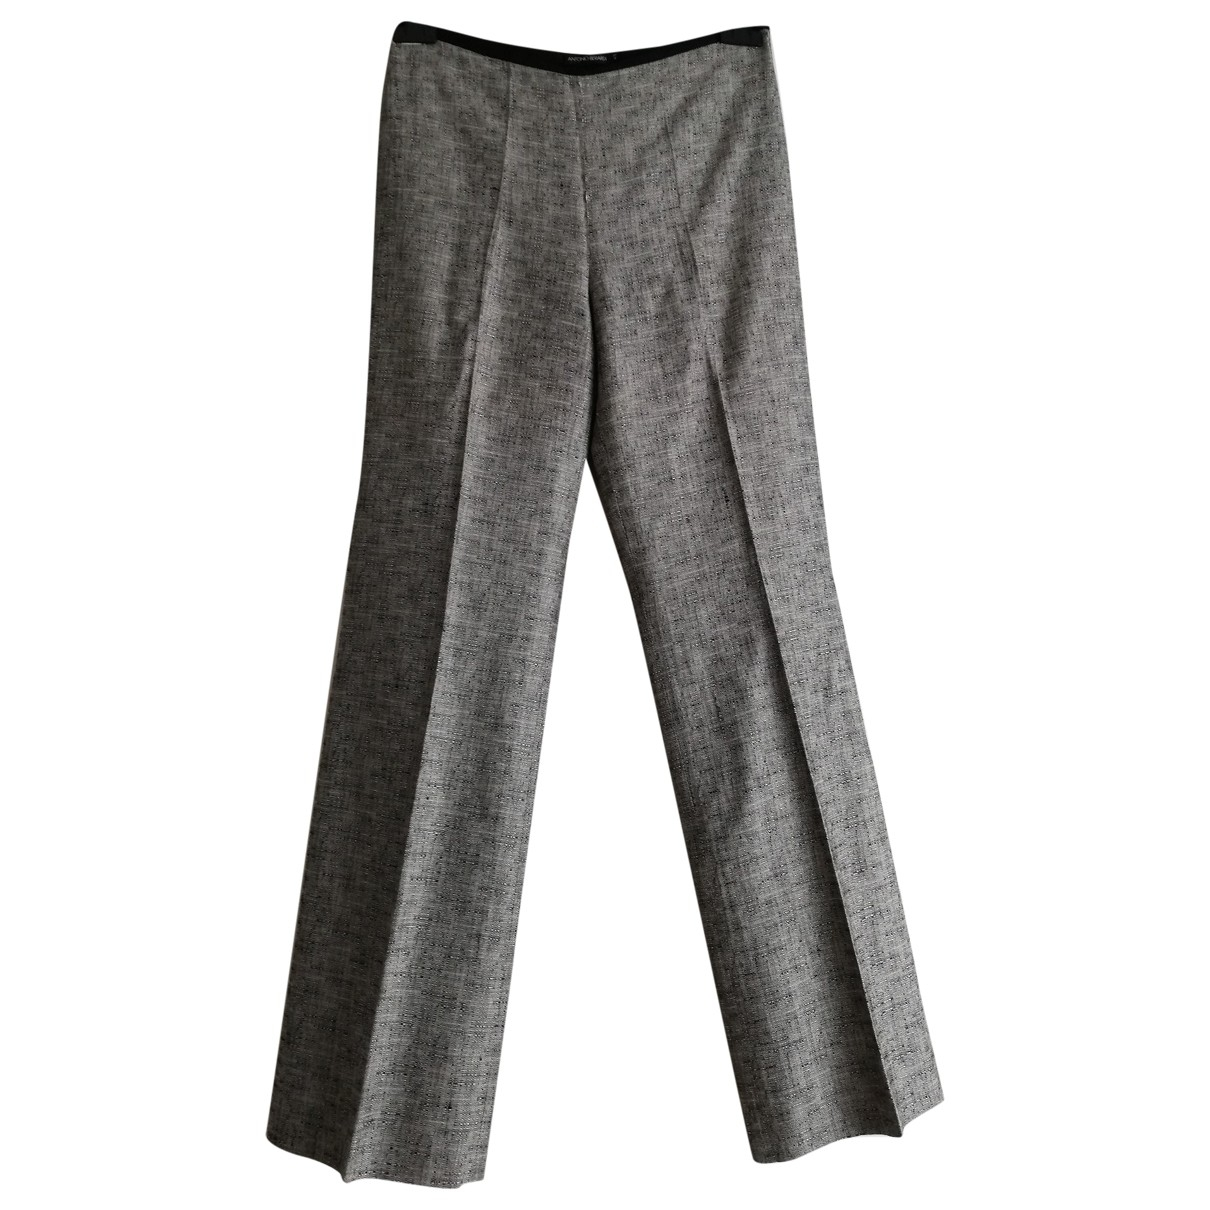 Antonio Berardi \N Black Trousers for Women 42 IT